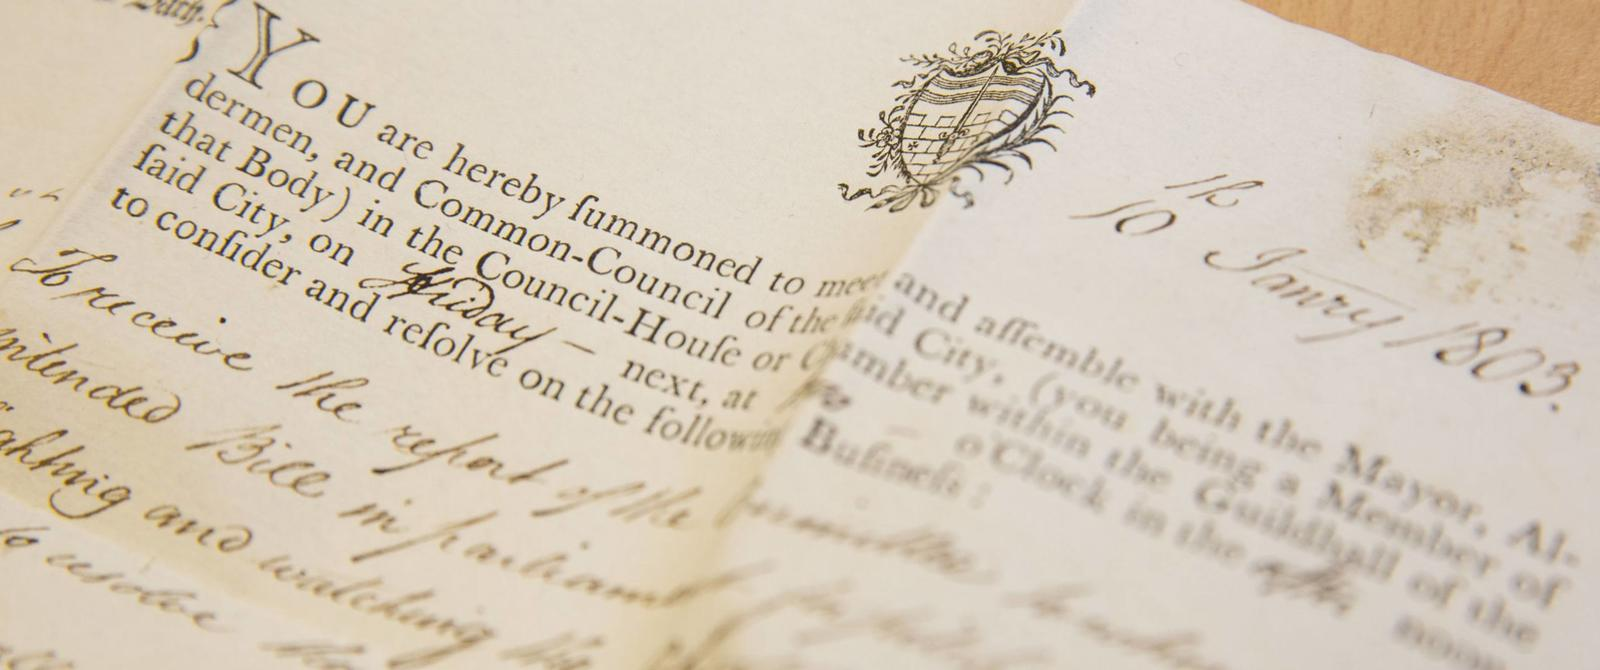 Photograph of part of a letter summoning a councillor to a meeting, 1803